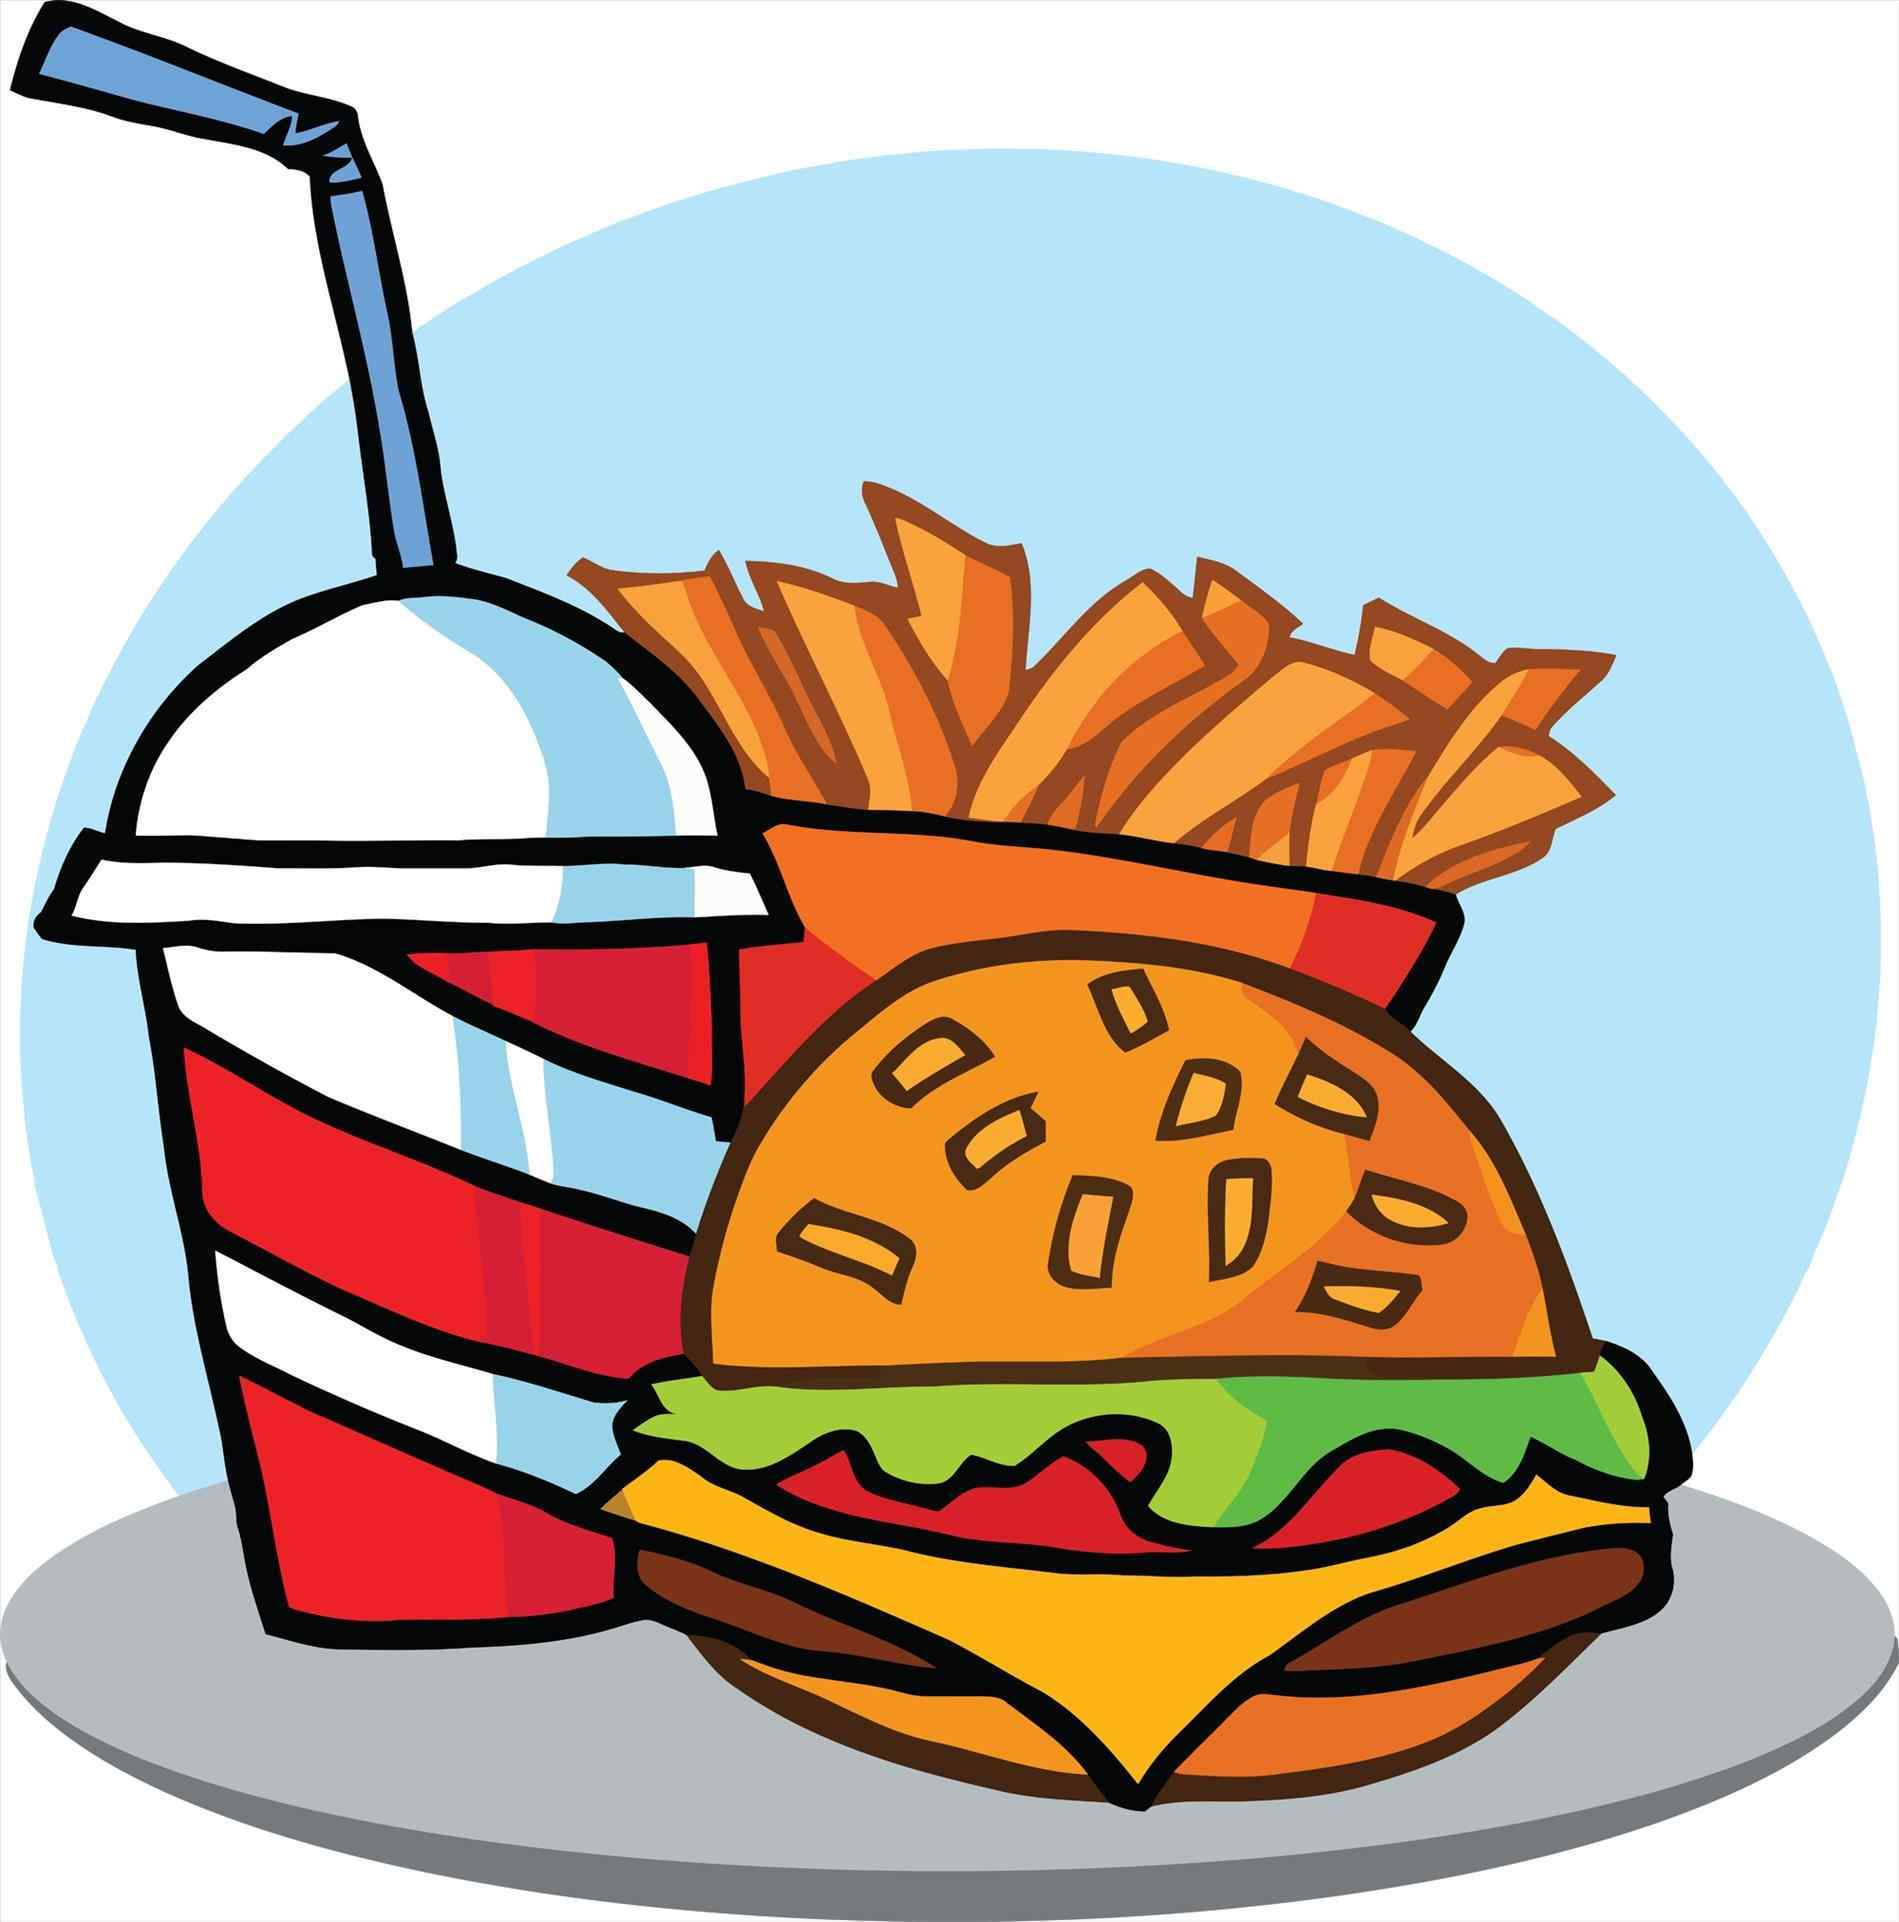 Chips clipart unhealthy food. Meal healthy vs junk